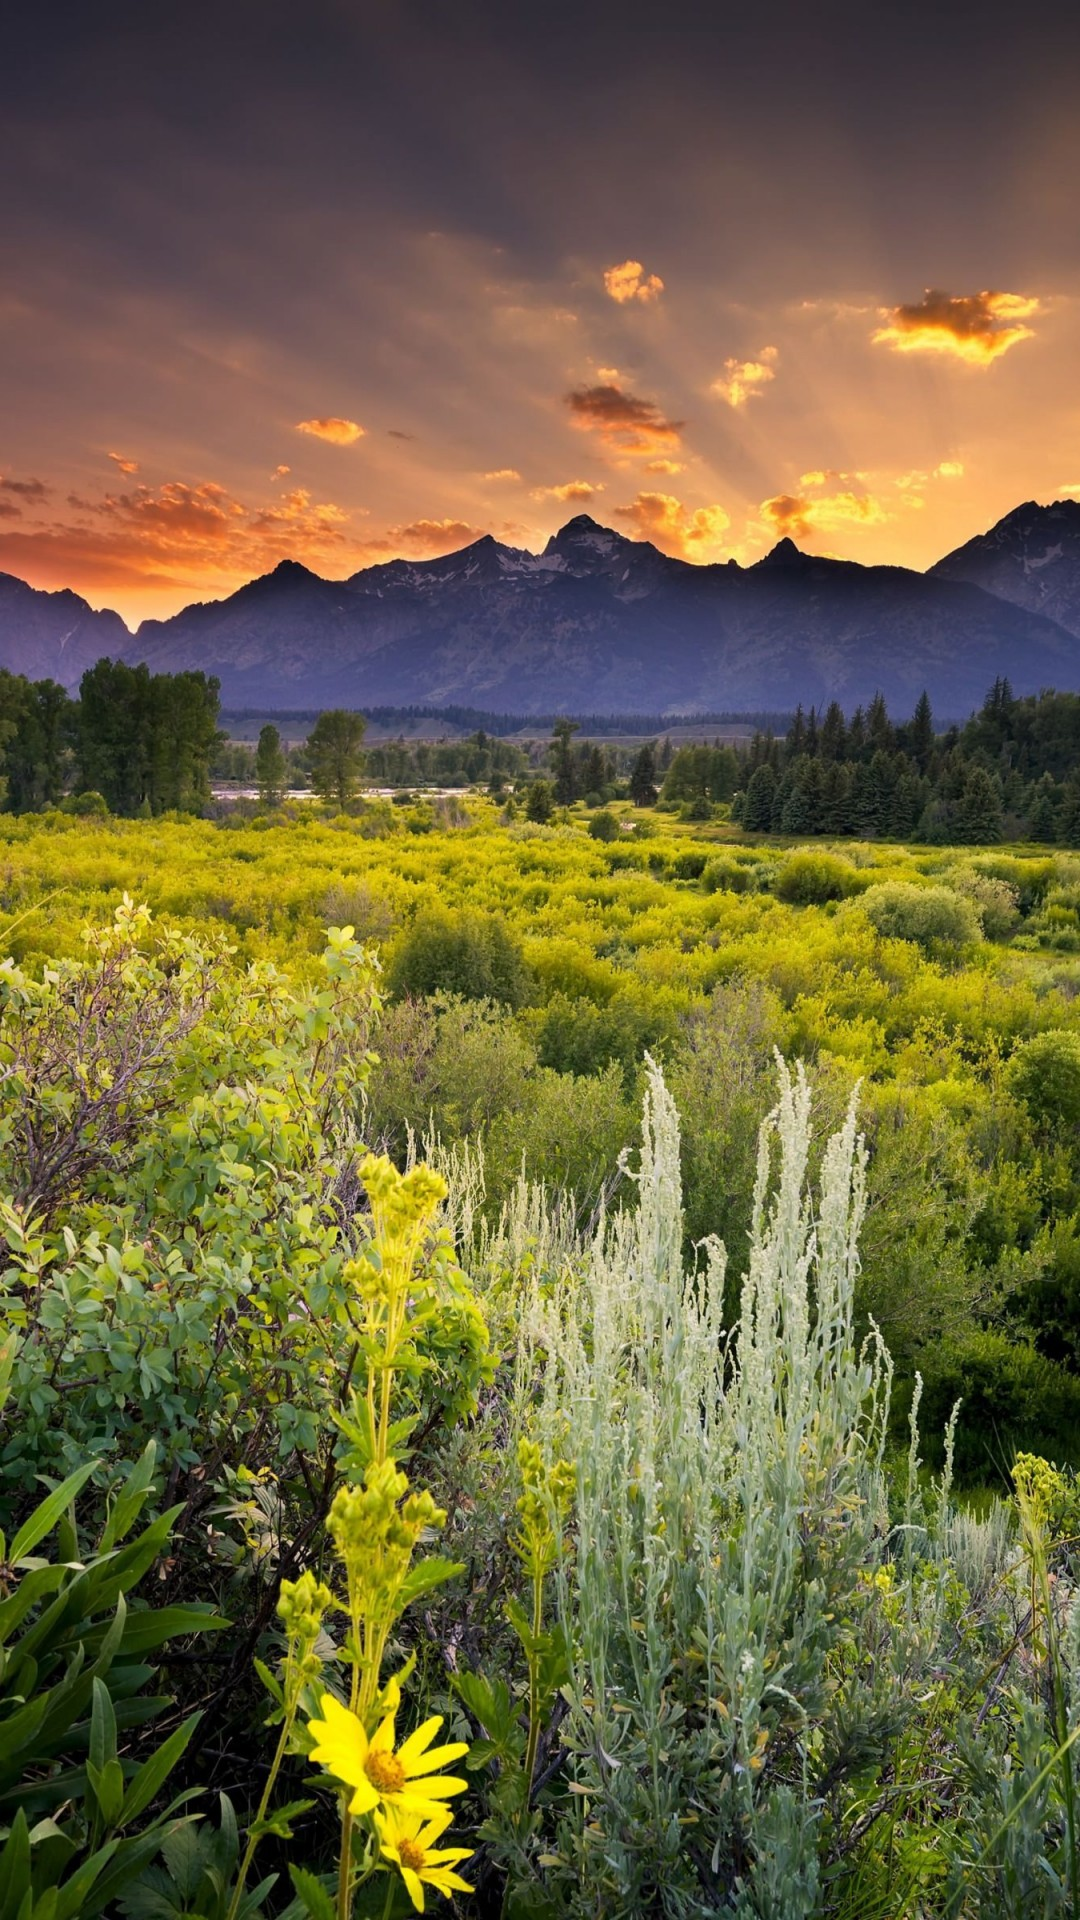 Sunset in Grand Teton National Park Wallpaper for LG G2